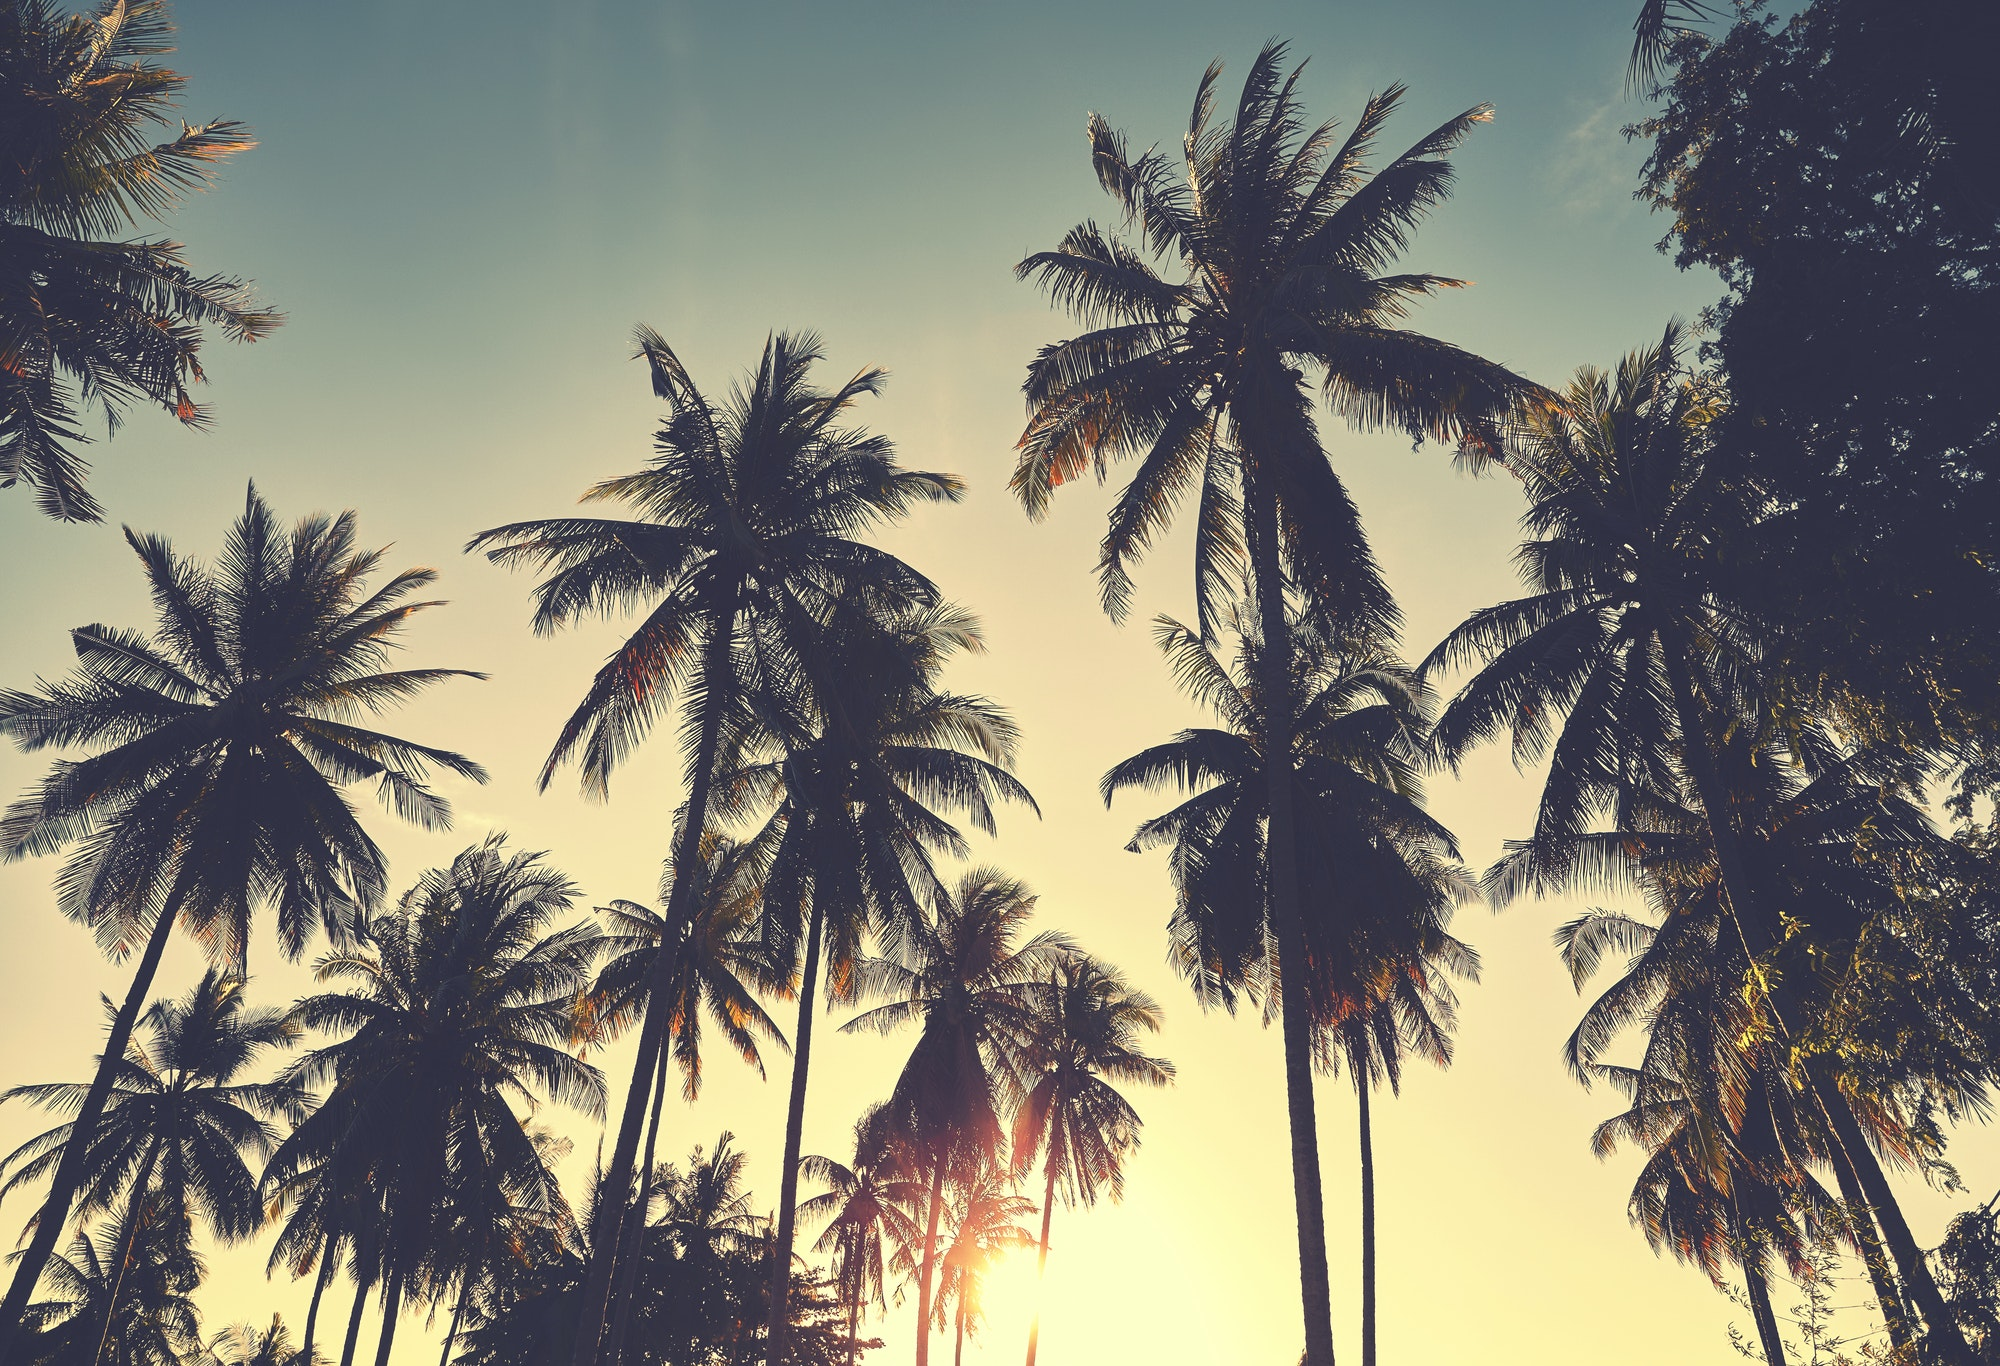 Coconut palm trees silhouettes at sunset. Russell Brooks